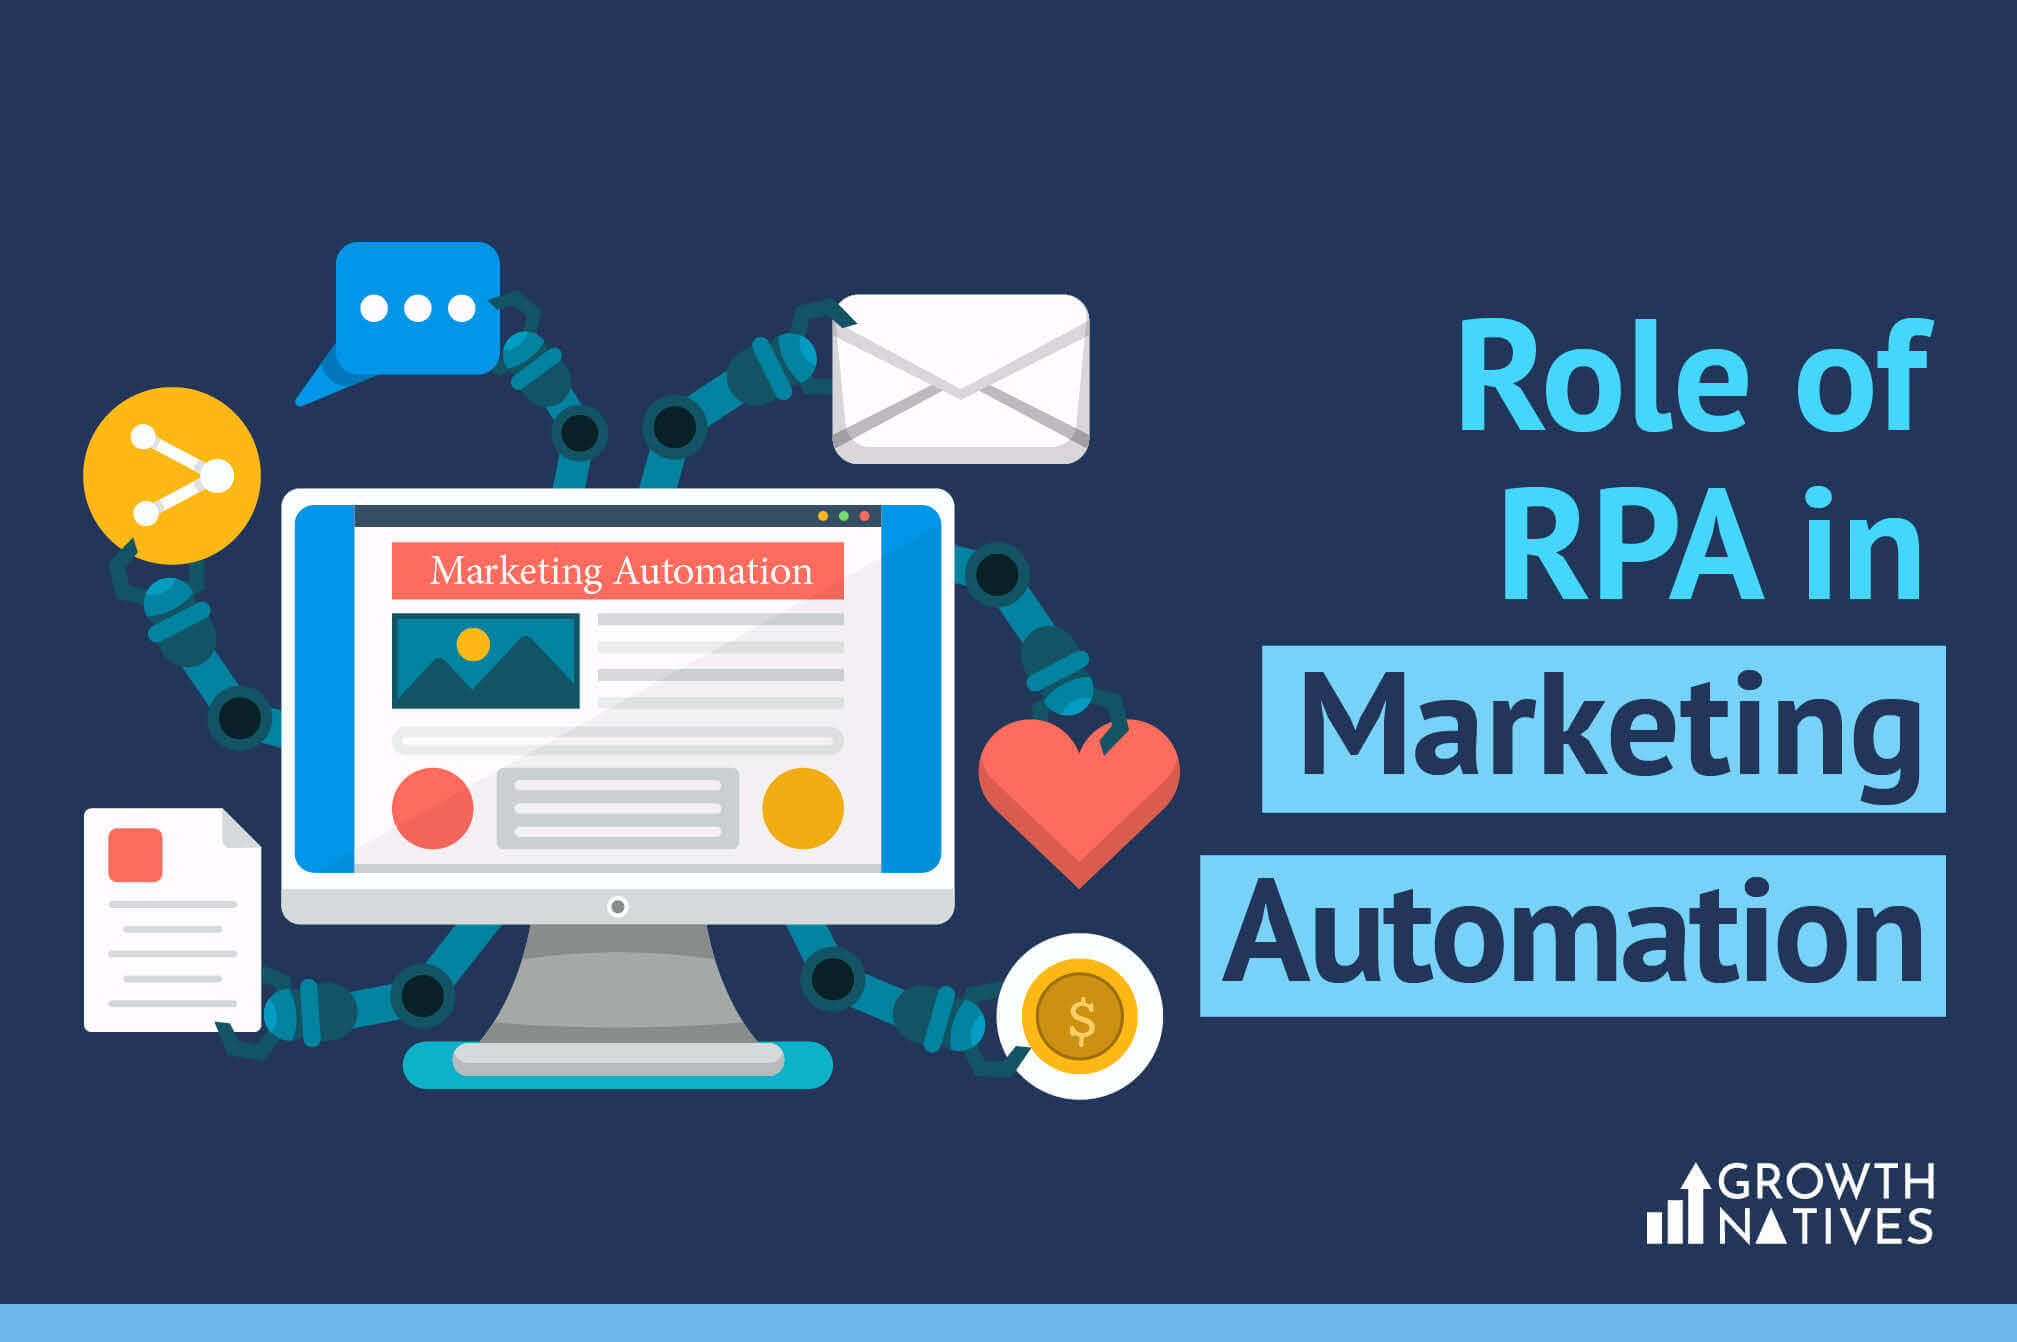 Robotic-process-automation-in-Mktg-Automation